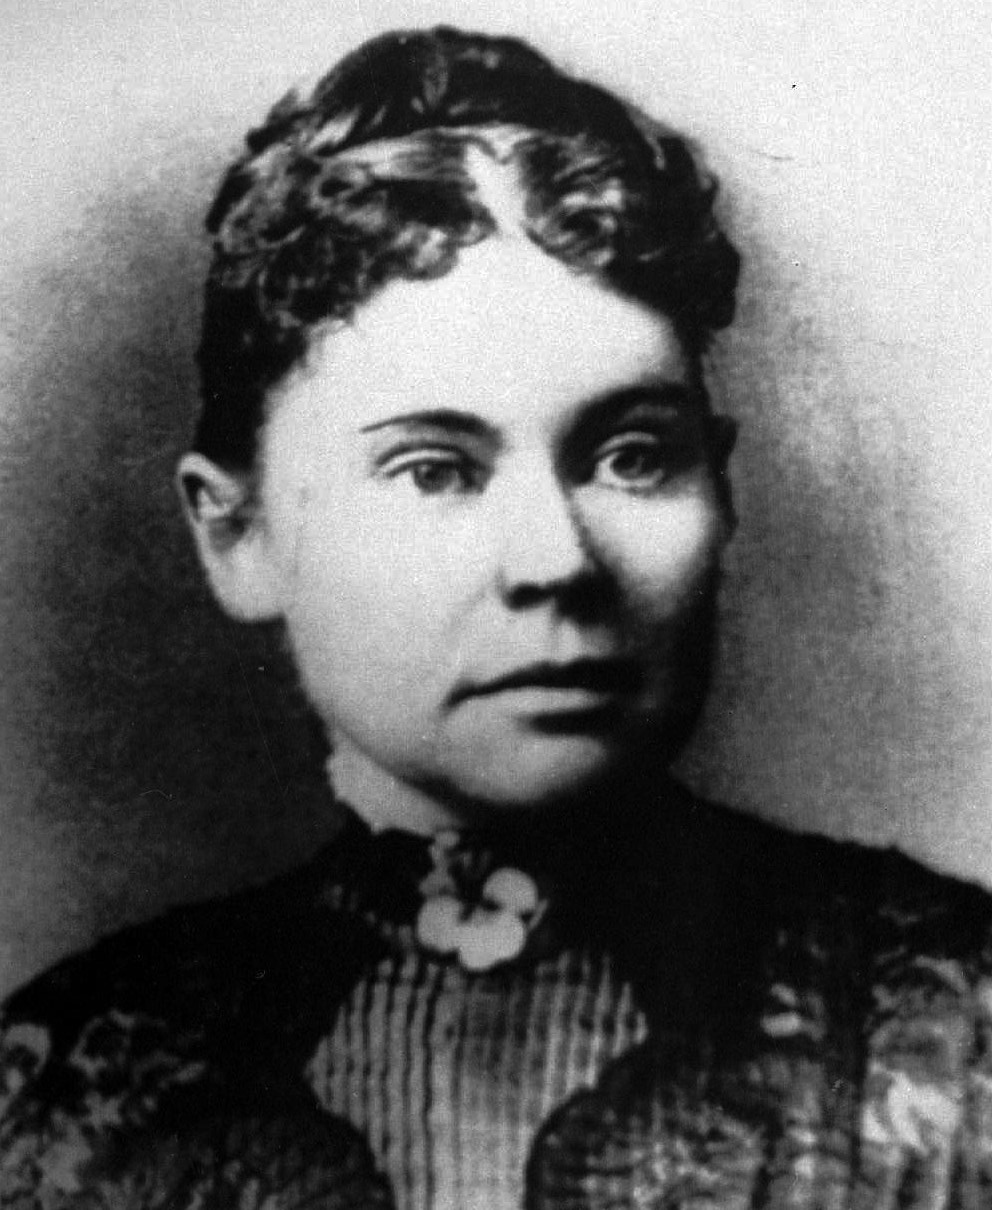 In 1892, Andrew and Abby Borden were axed to death in their home in Fall River, Massachusetts. Lizzie Borden, Andrew's daughter from a previous marriage, was accused of the killings, but acquitted at trial. This is a 1890 photo of Lizzie Borden. (AP Photo)